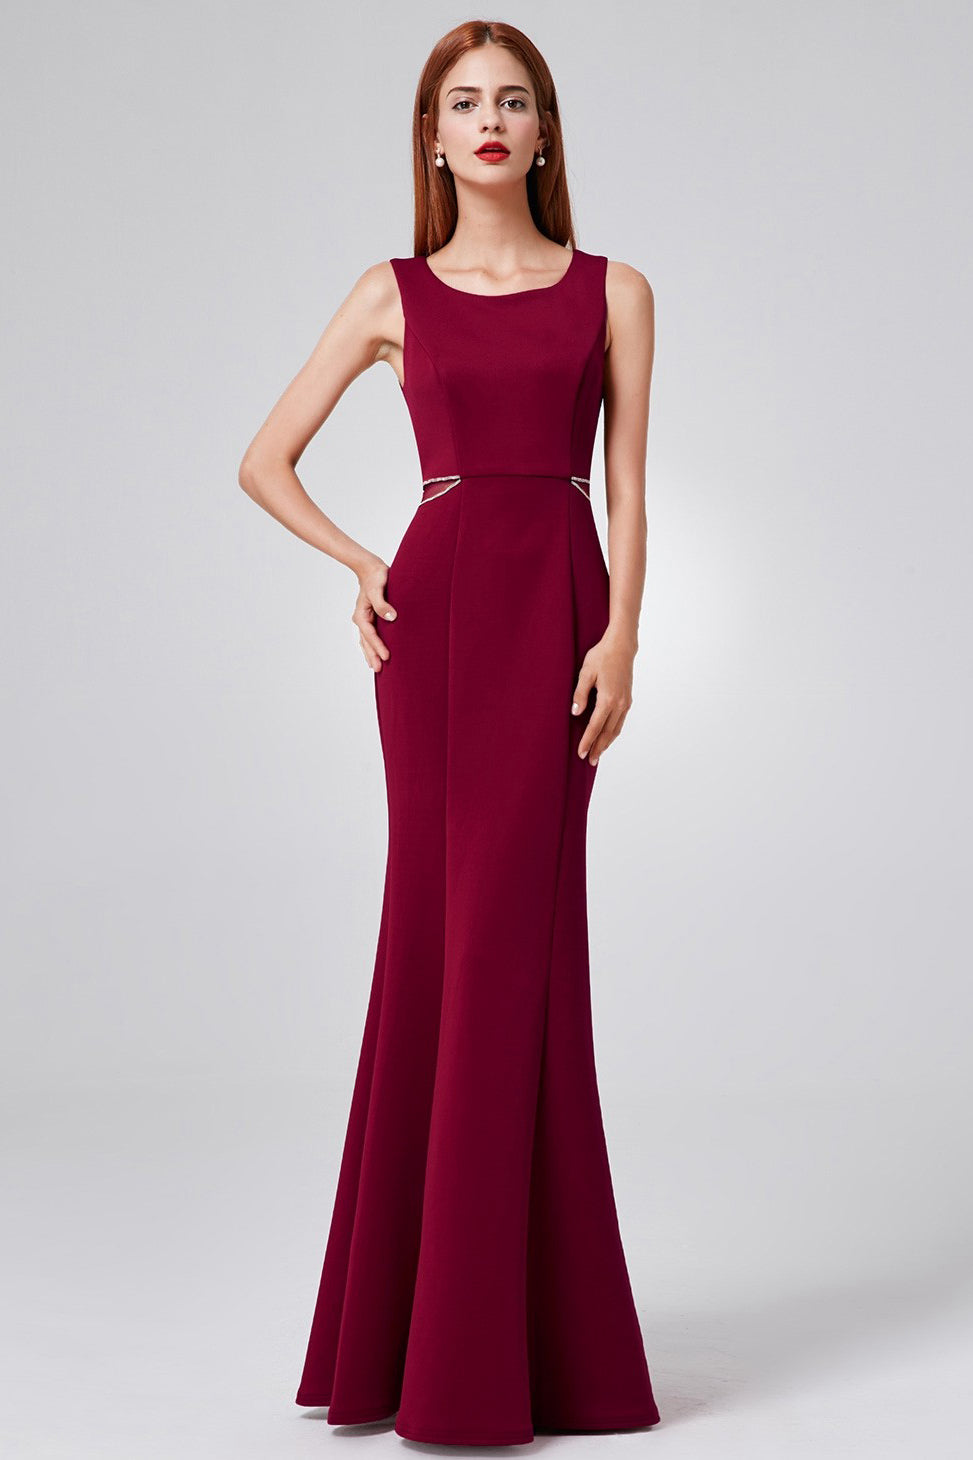 Sheath/Column Scoop Neck Sexy Evening Dress